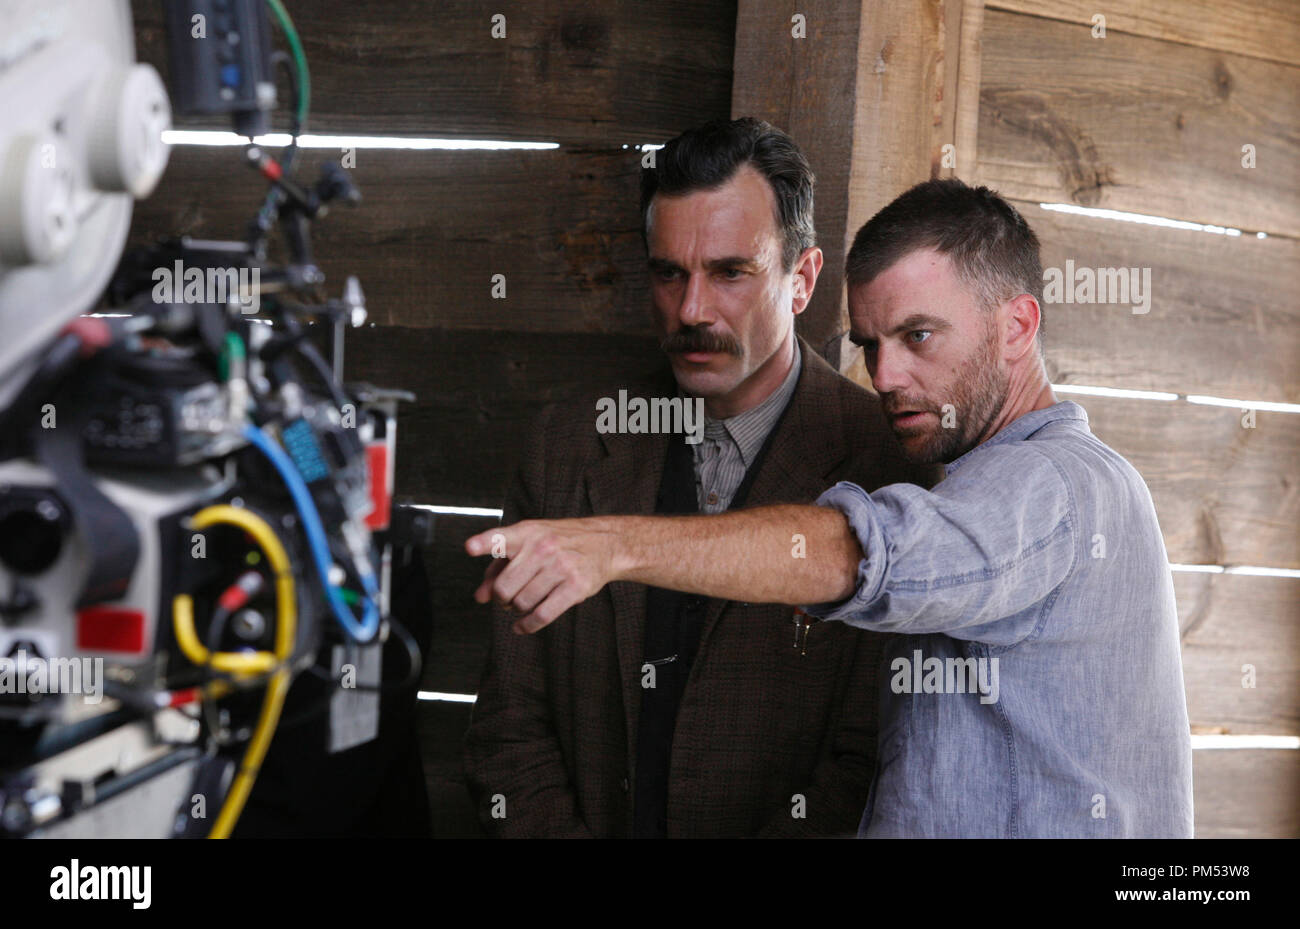 There Will Be Blood Daniel Day-Lewis, director Paul Thomas Anderson  © 2007 Paramount Vantage Stock Photo